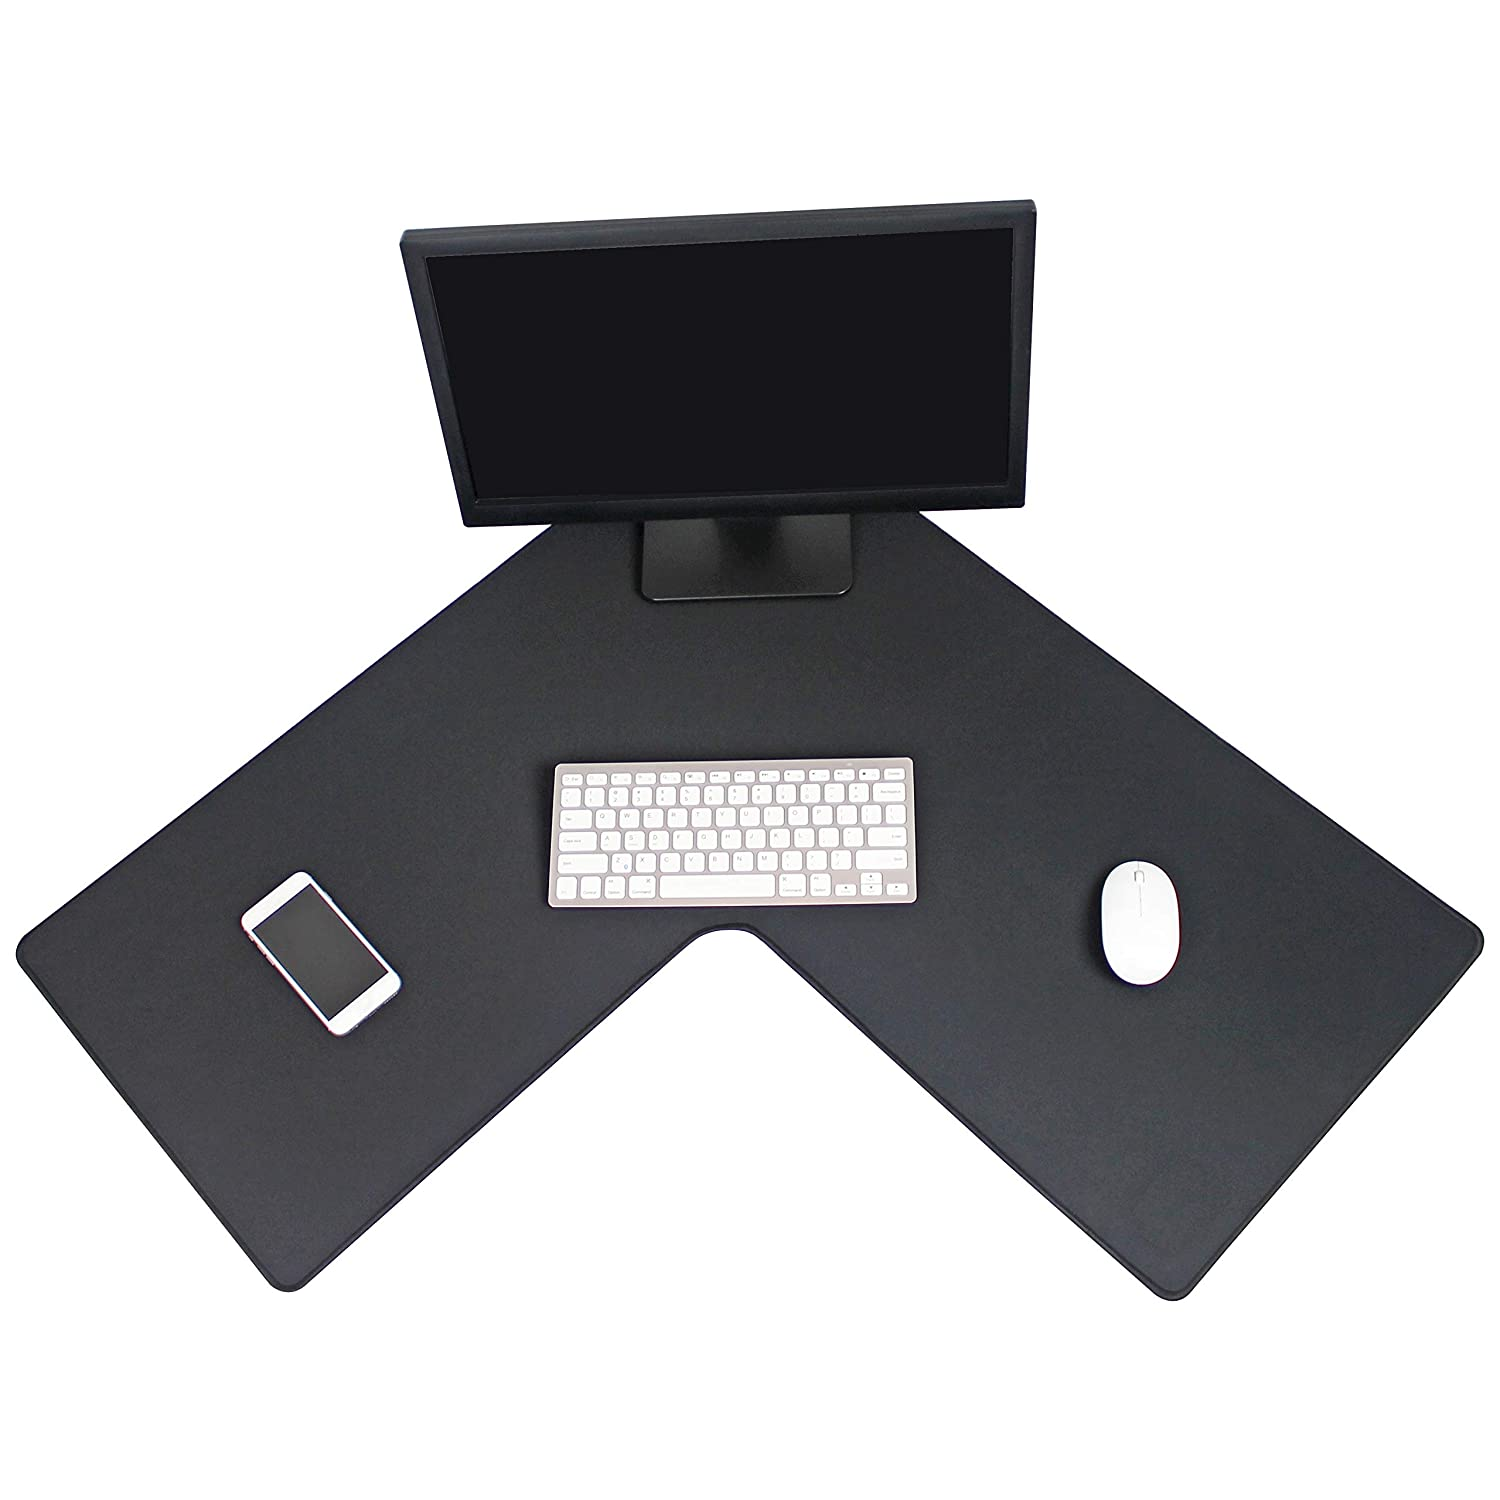 Ideal for L Shaped Desks and Gaming Setups Water Resistant 3mm Thickness Stitched Edges LPadds L Shaped Mouse Pad Large//Black